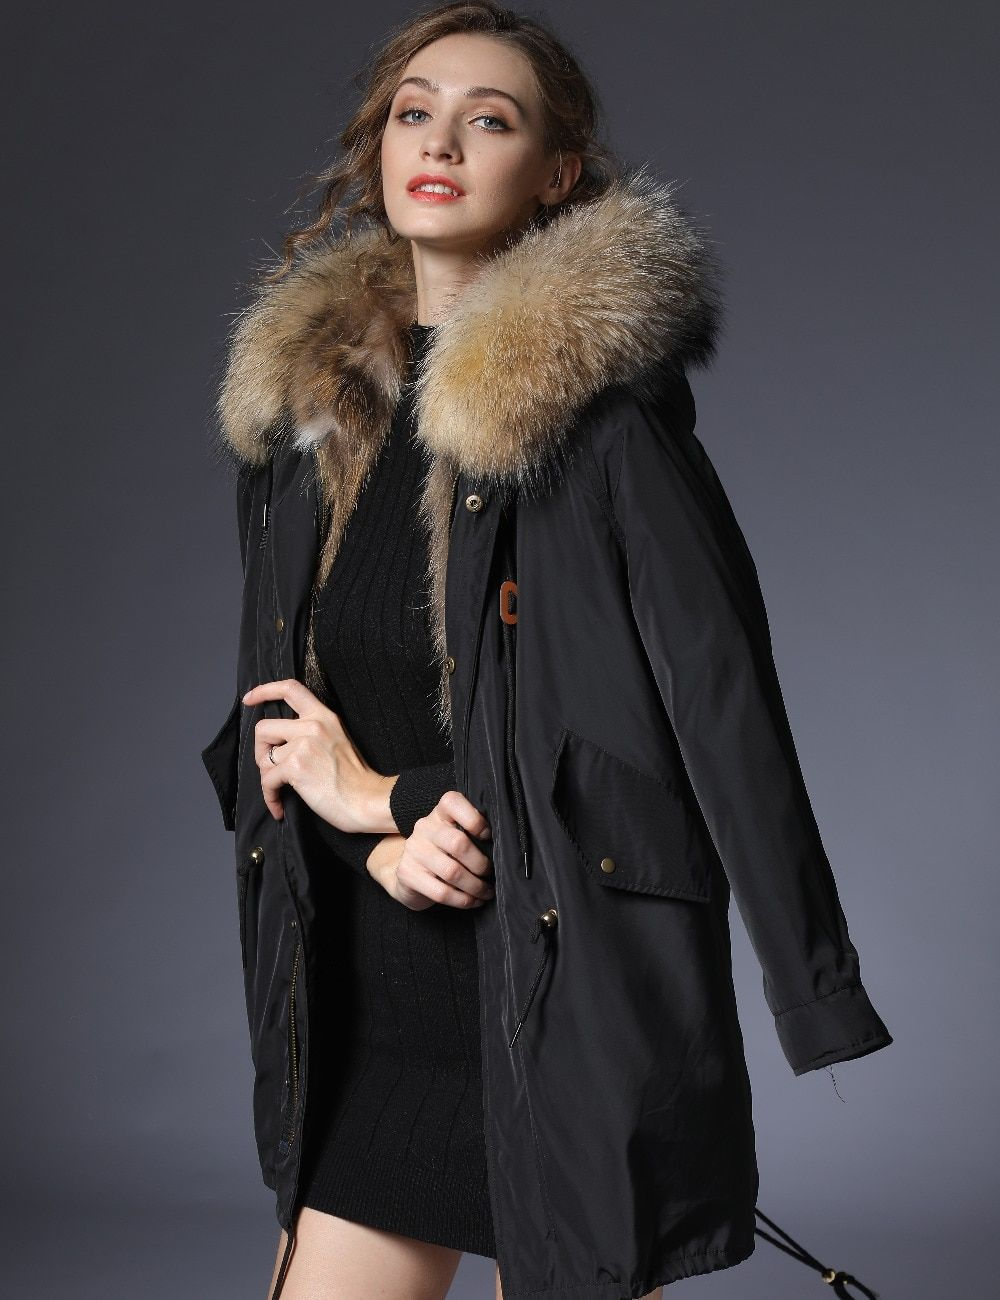 2018 parka woman winter jacket parkas women long real fur coat big raccoon fur collar hooded parkas thick outerwear stree style